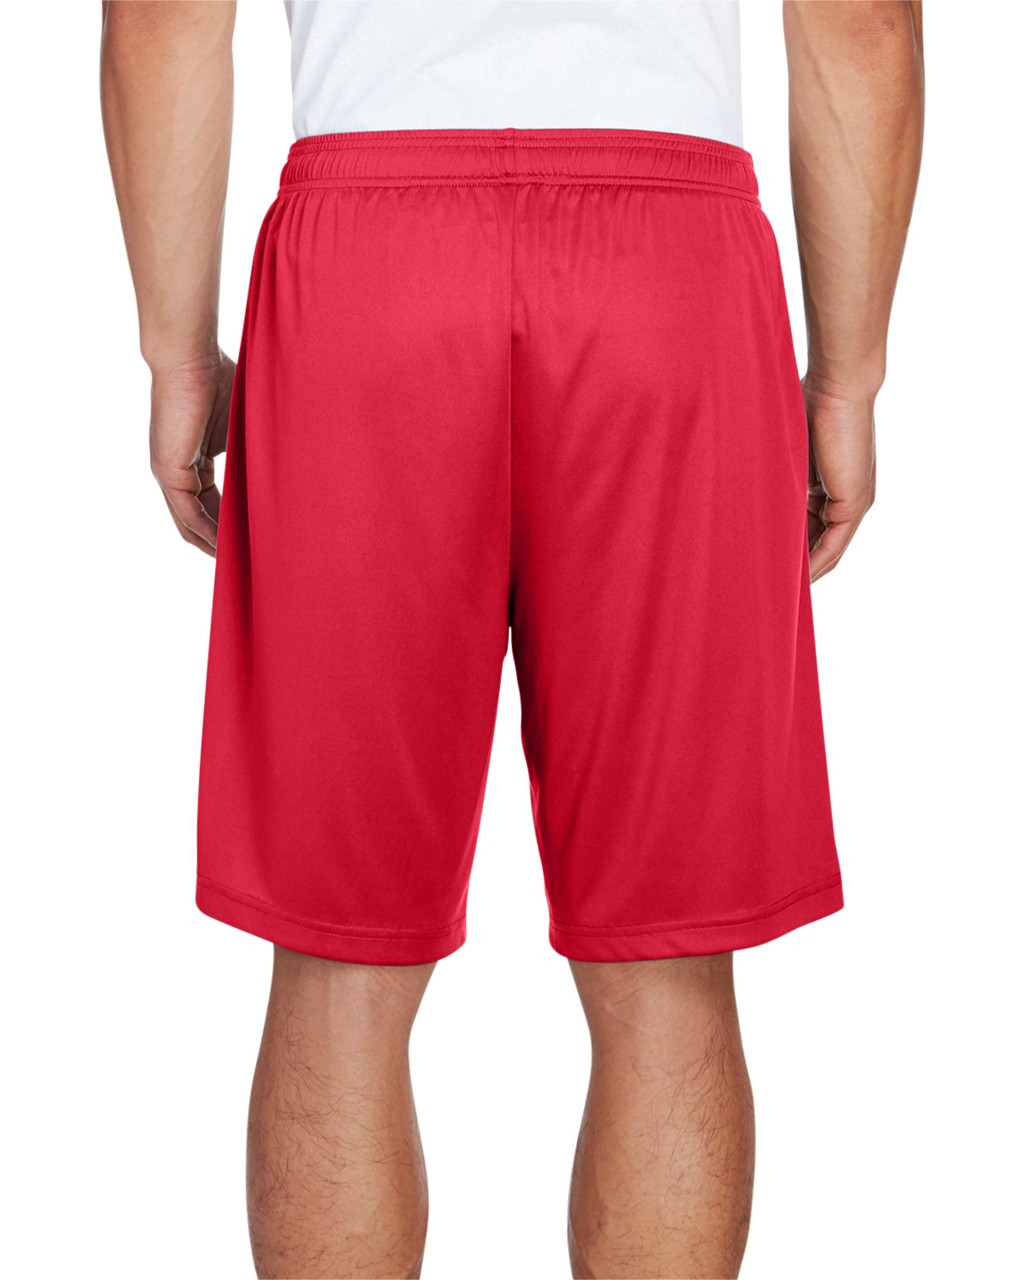 Sport Red - Back, TT11SH Team 365 Men's Zone Performance Short | BlankClothing.ca